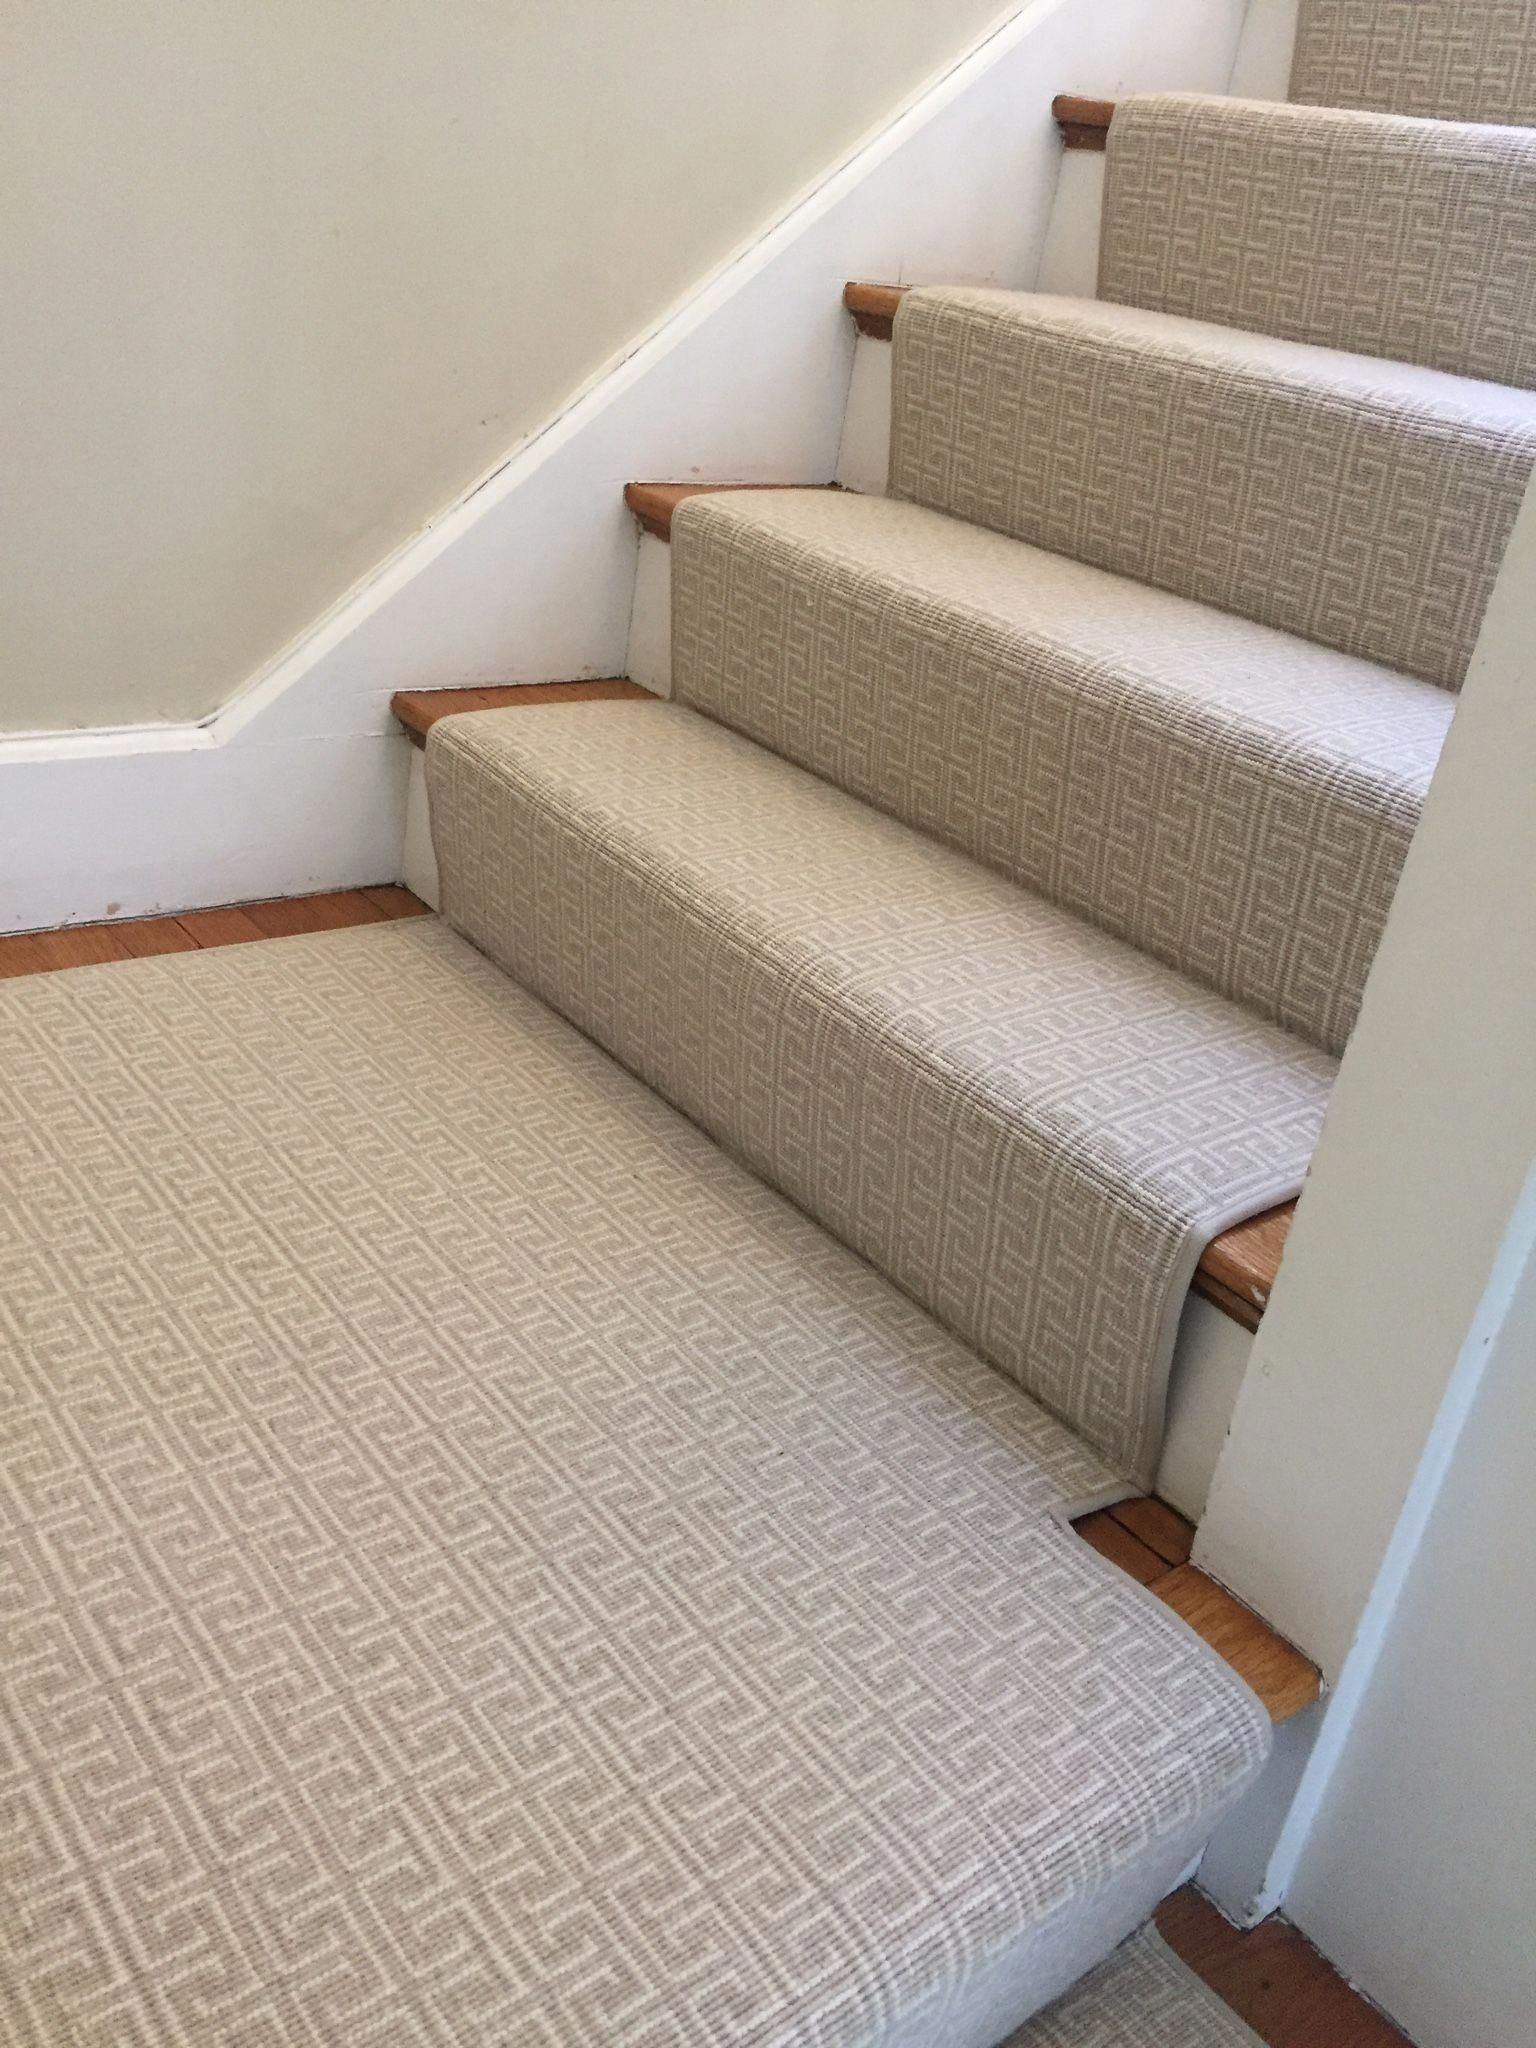 Carpet Runners End Of The Roll Wheretobuycarpetrunners Id | End Of The Roll Stair Runners | Roger Oates | Staircase Makeover | Wall Carpet | Hallway Carpet | Stair Treads